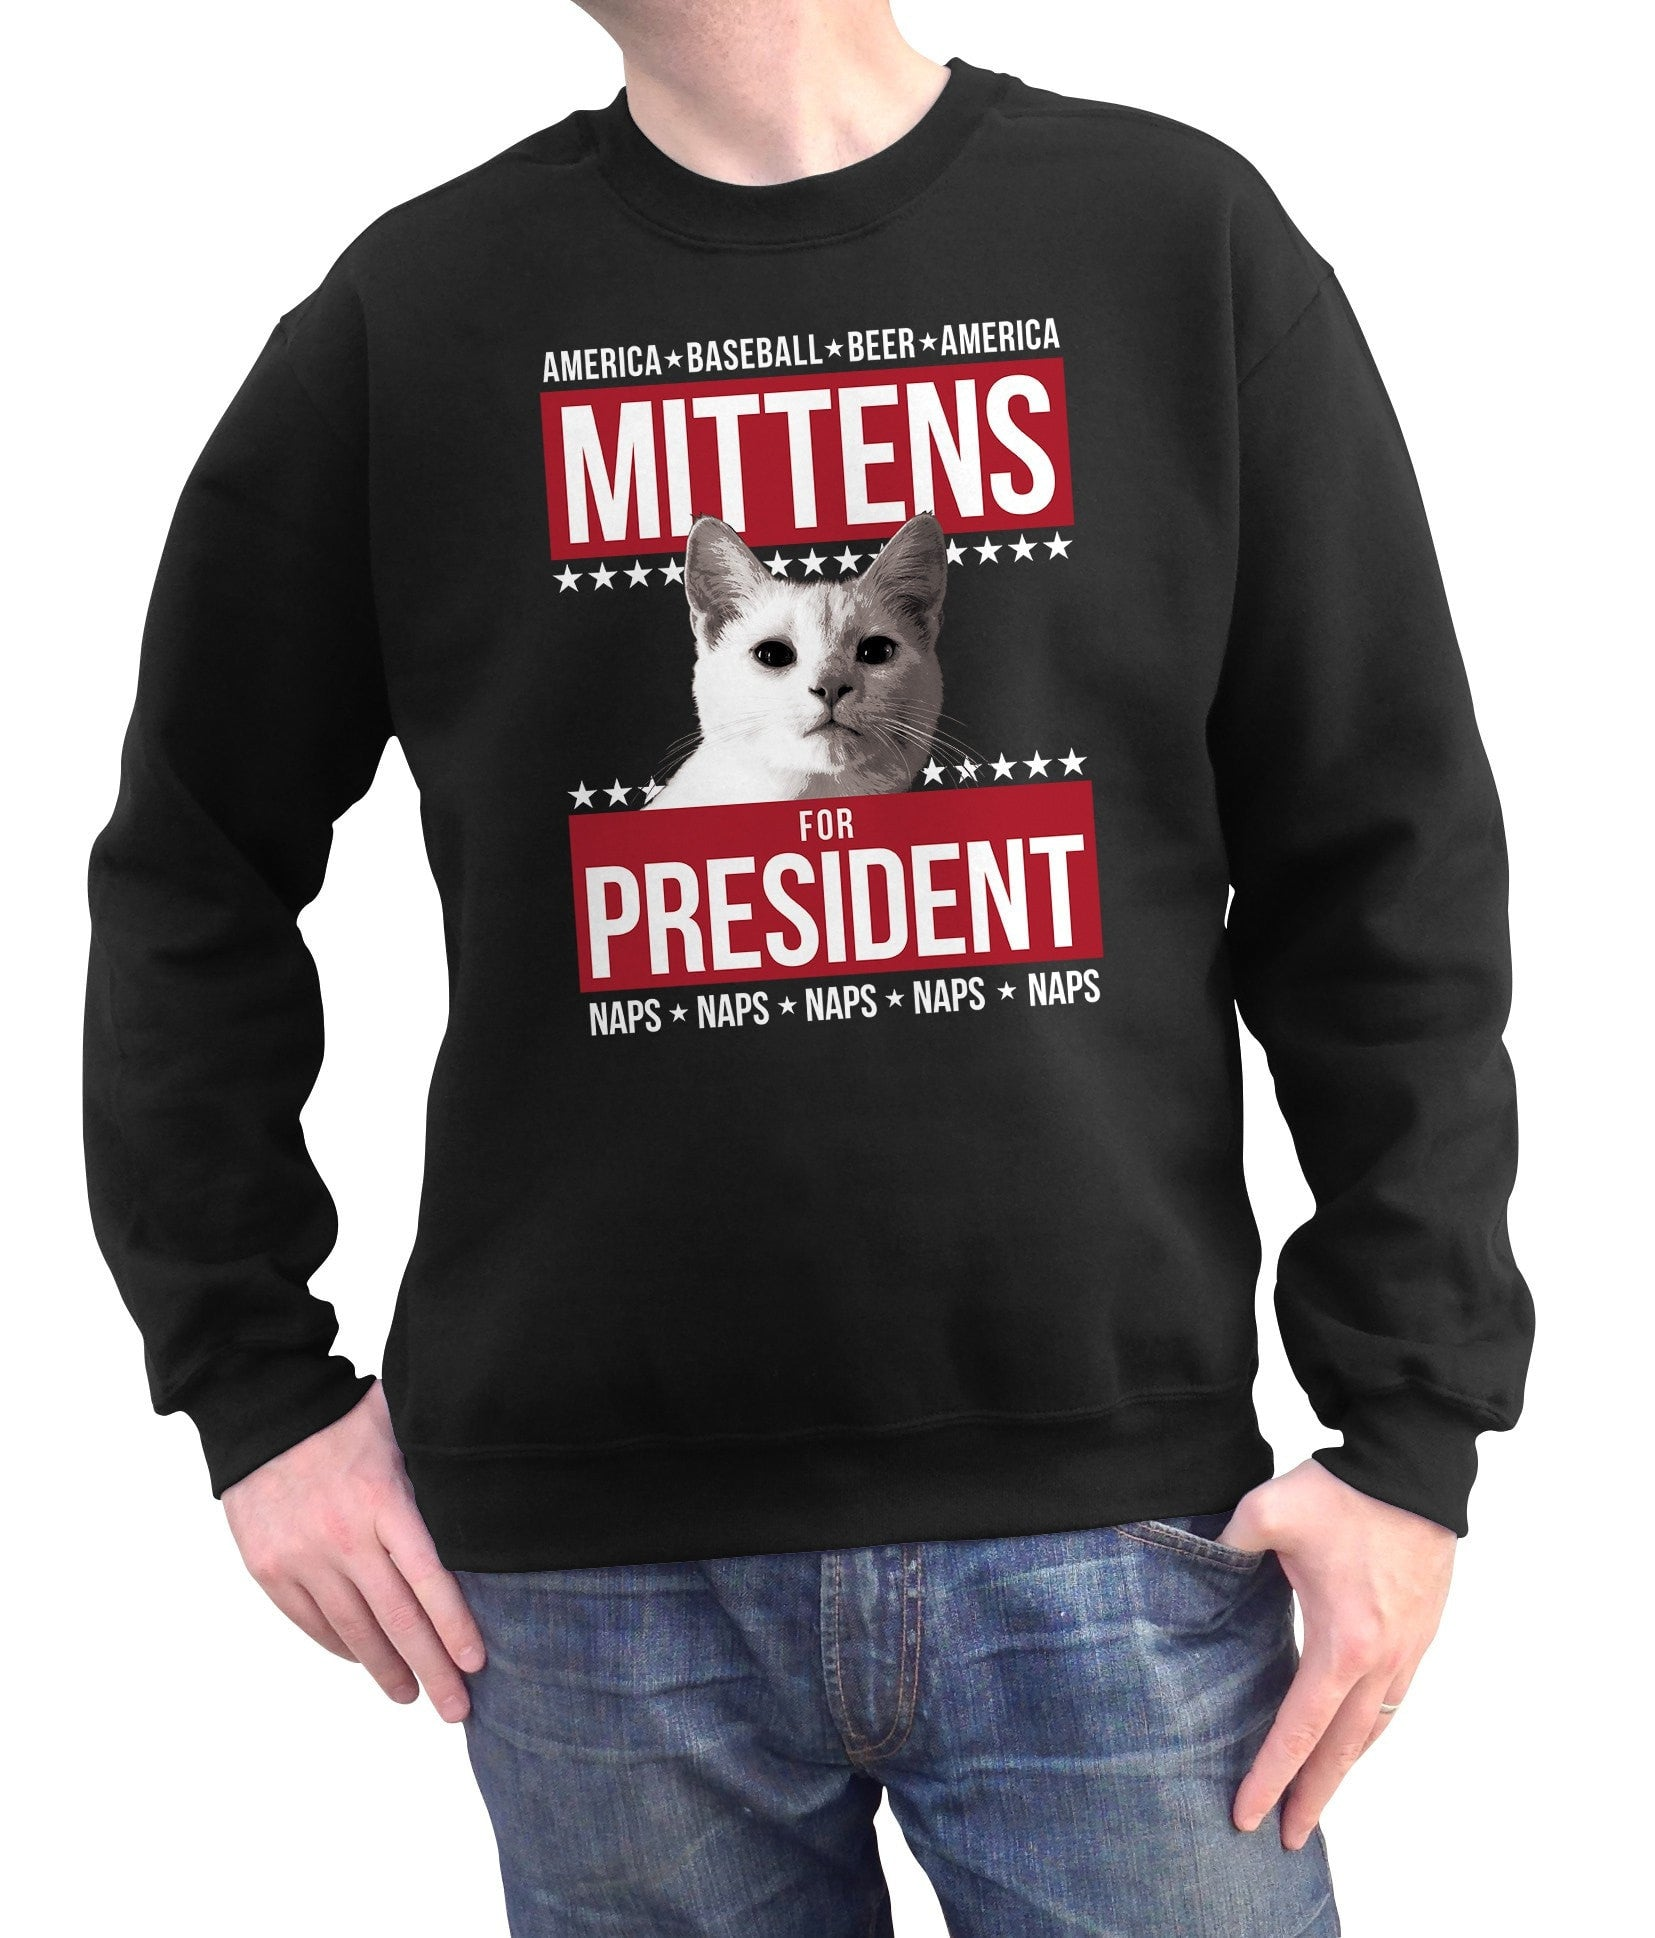 Unisex Mittens for President Sweatshirt - Election Political Funny Cat